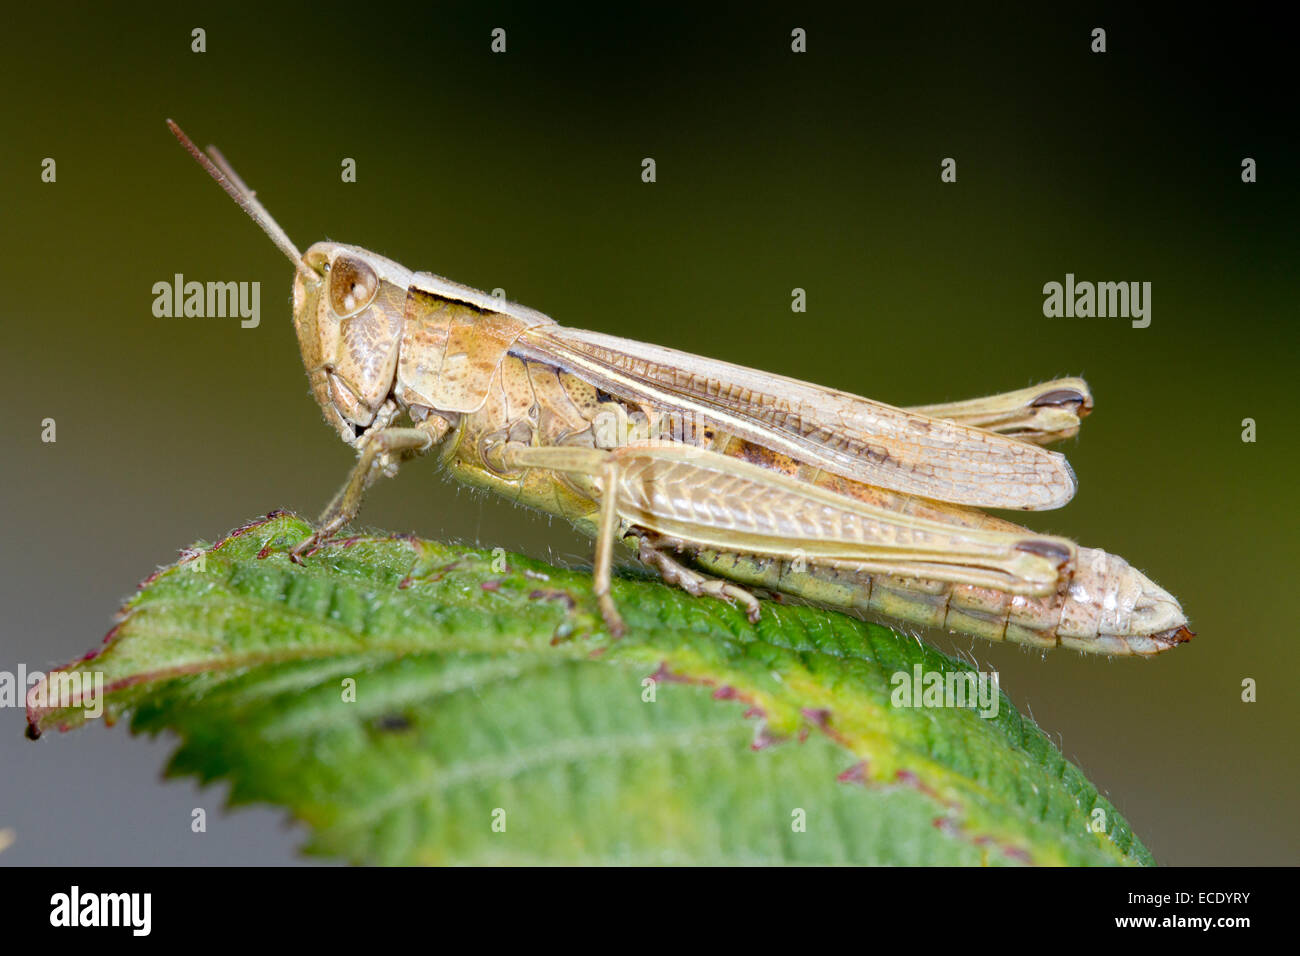 Lesser Marsh Grasshopper (Chorthippus albomarginatus) adult female basking on a leaf. Shropshire, England. August. - Stock Image